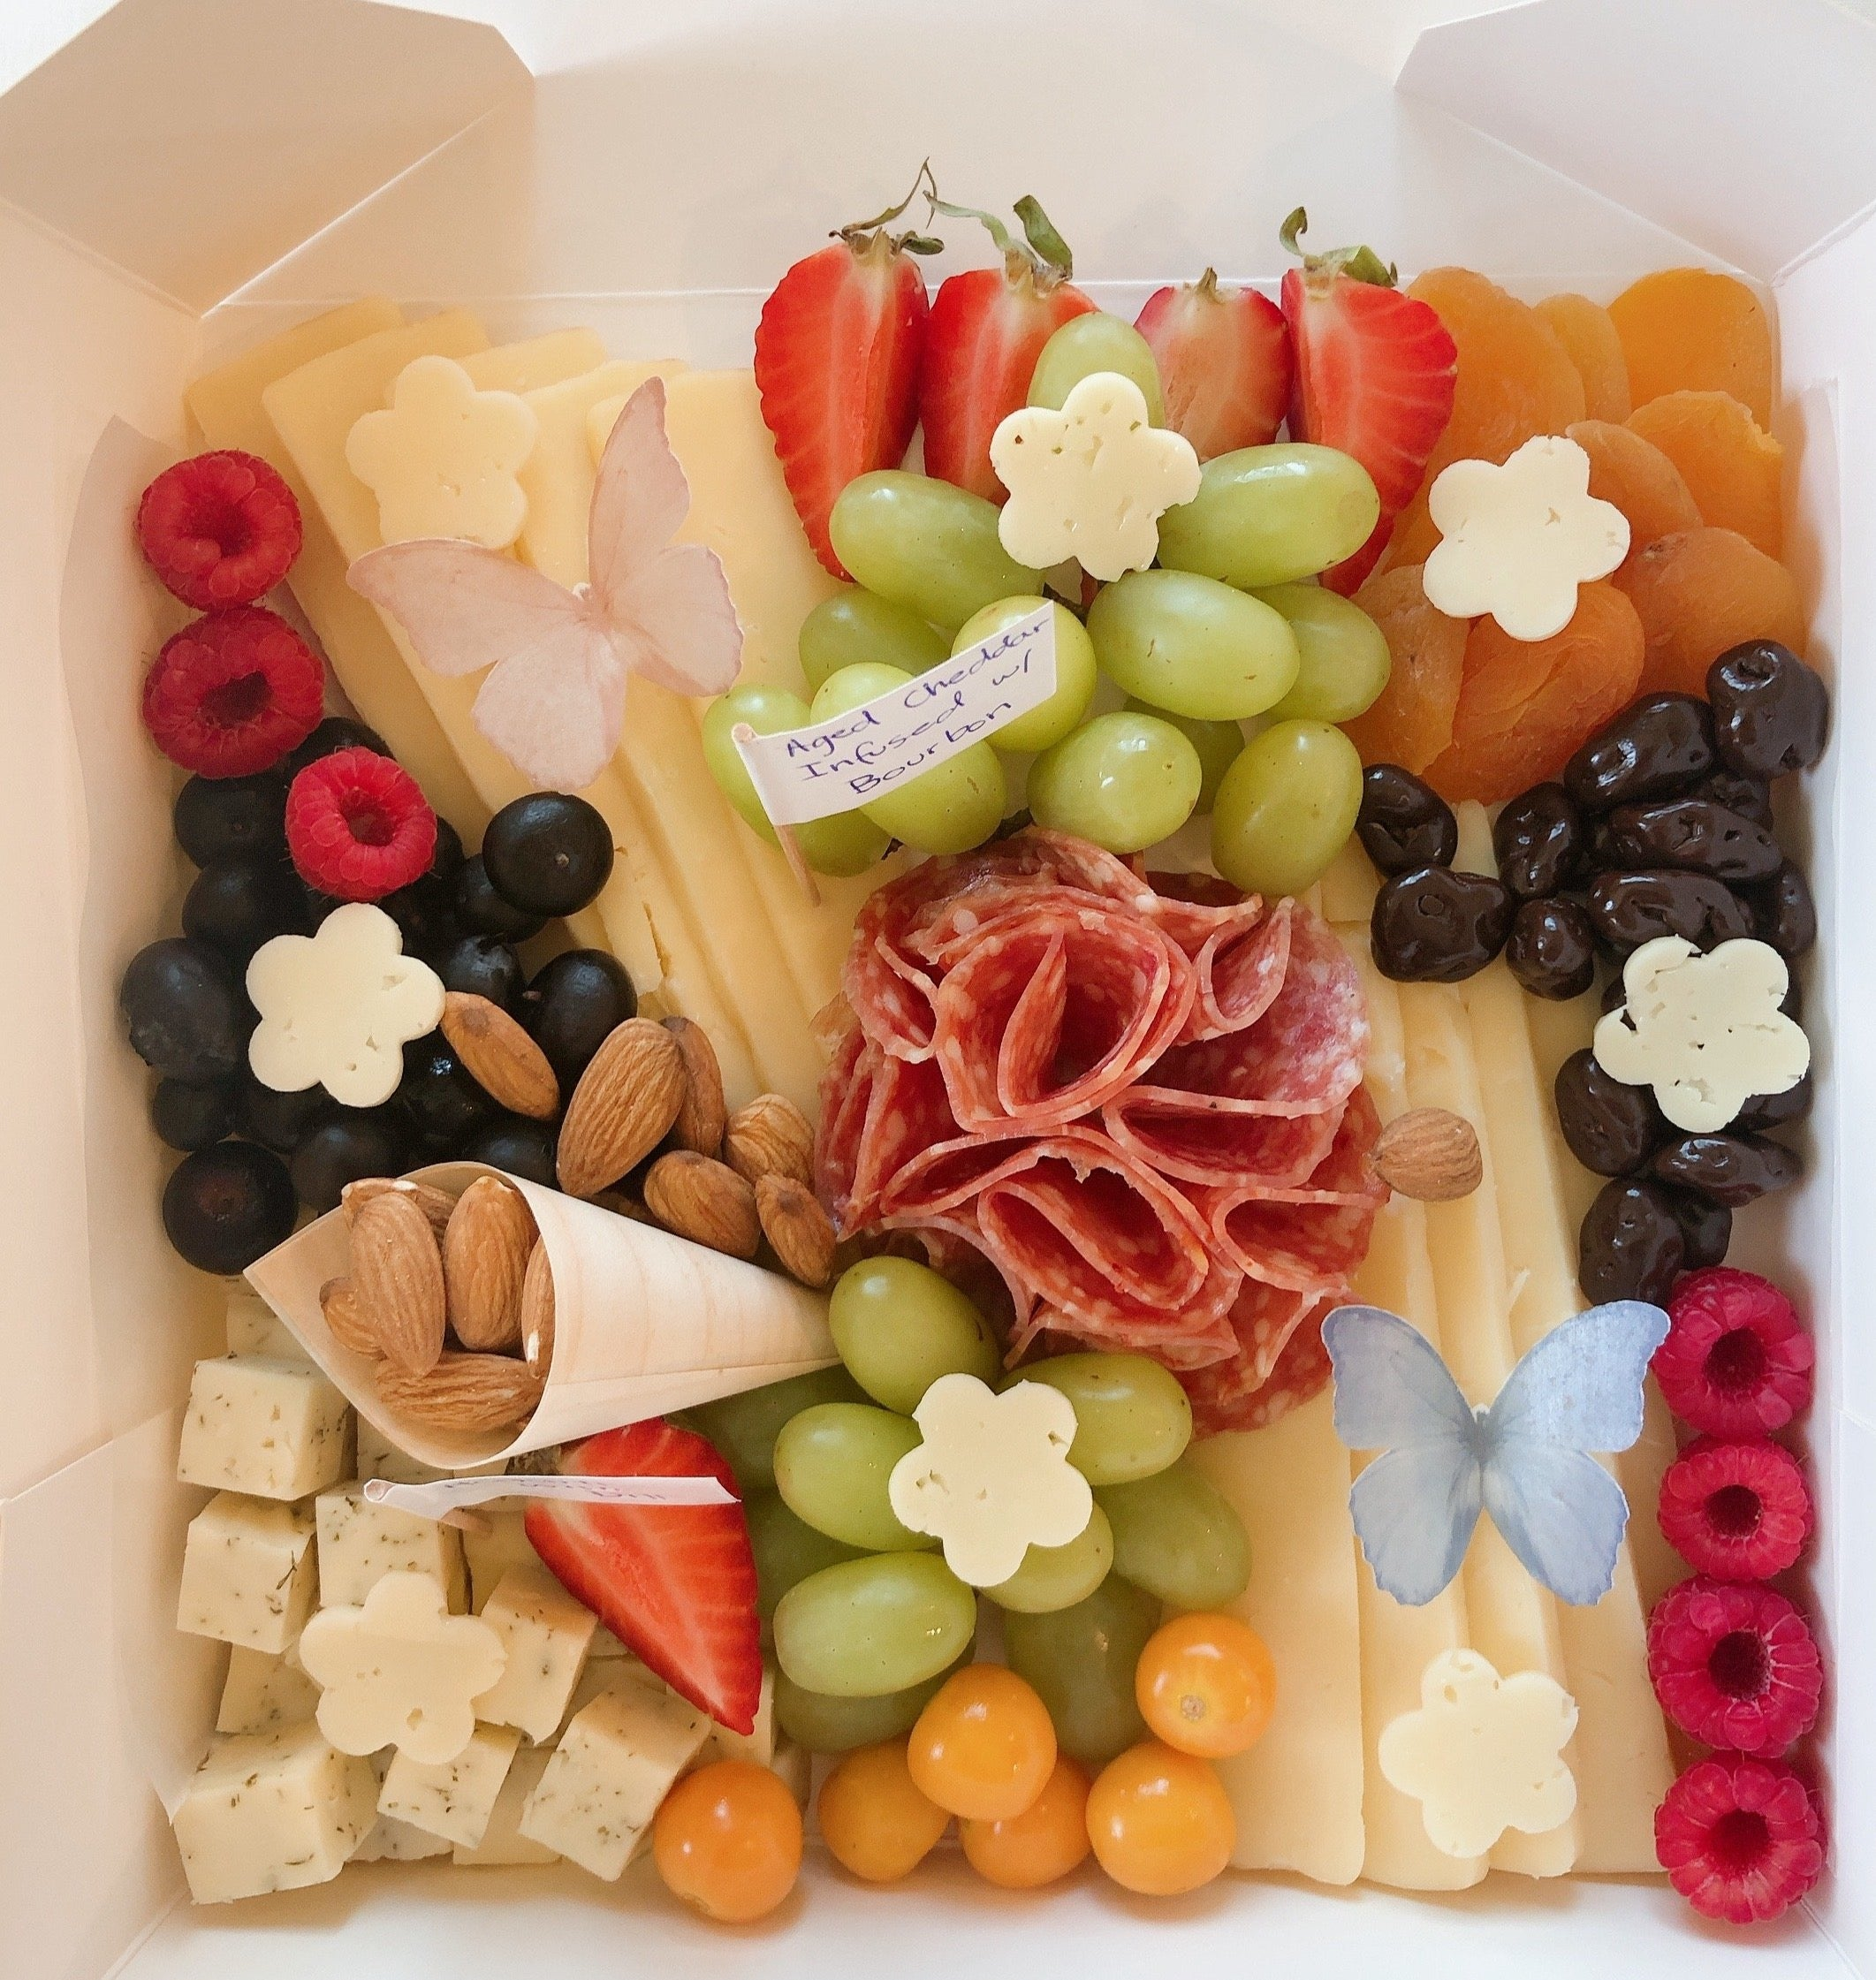 Mini Cheeseboard For 2-4 People